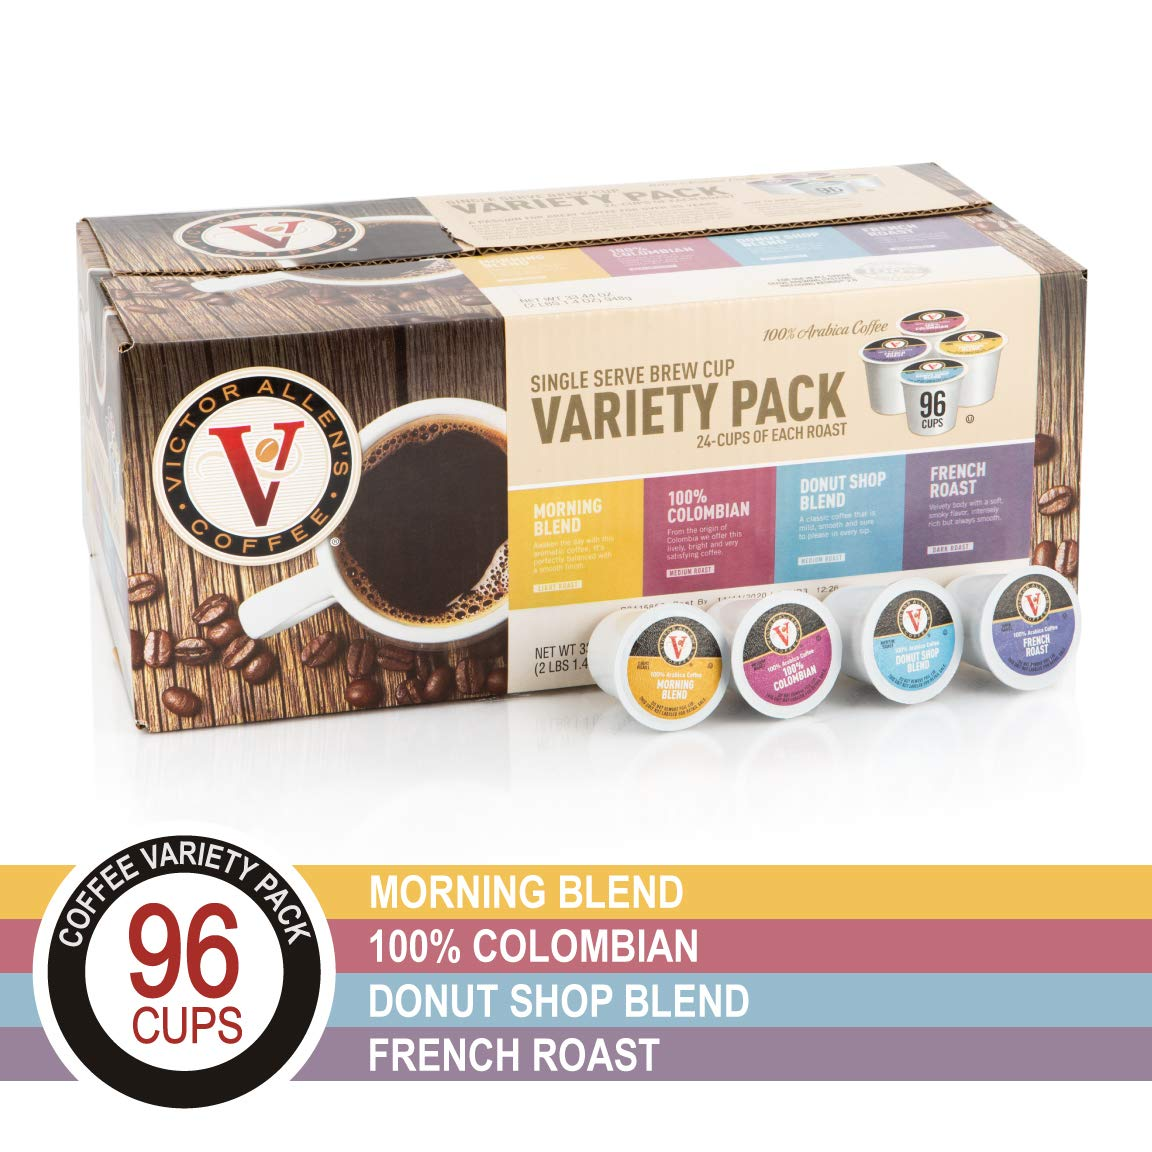 Donut Shop, Morning Blend, 100% Colombian, and French Roast Variety Pack for K-Cup, Keurig 2.0 Brewers, 96 Count Victor Allen's Coffee Single Serve Coffee Pods by Victor Allen